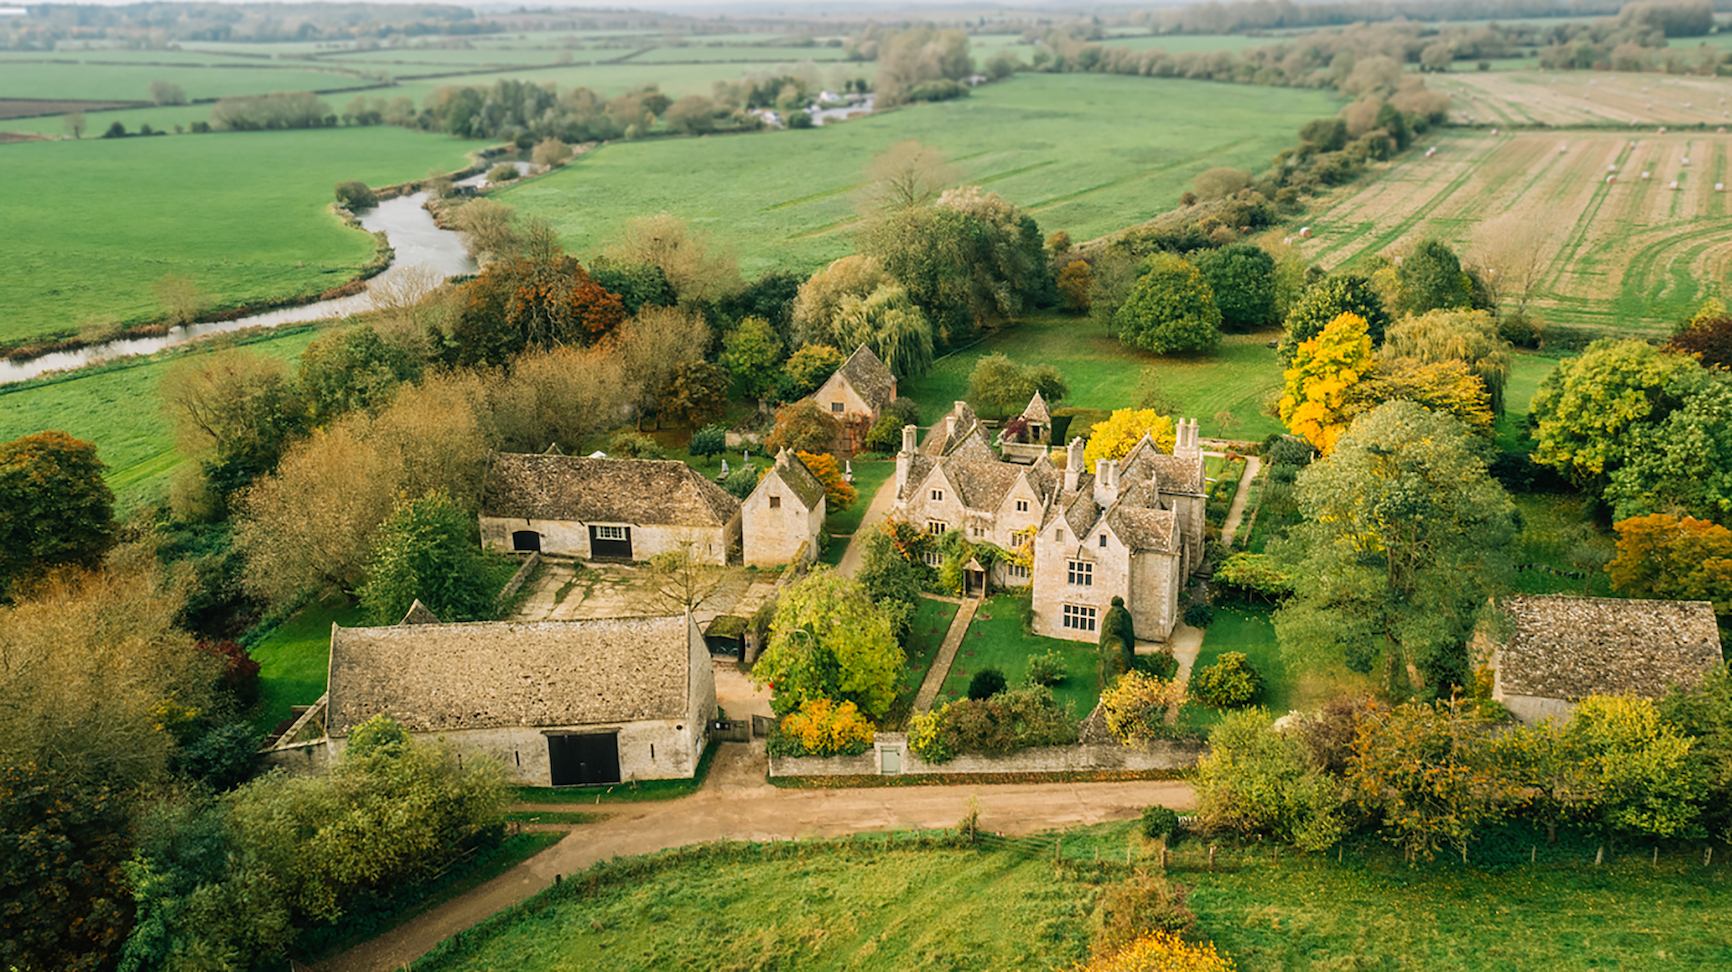 Morris's Cotswolds 'heaven on earth' to get £6m upgrade